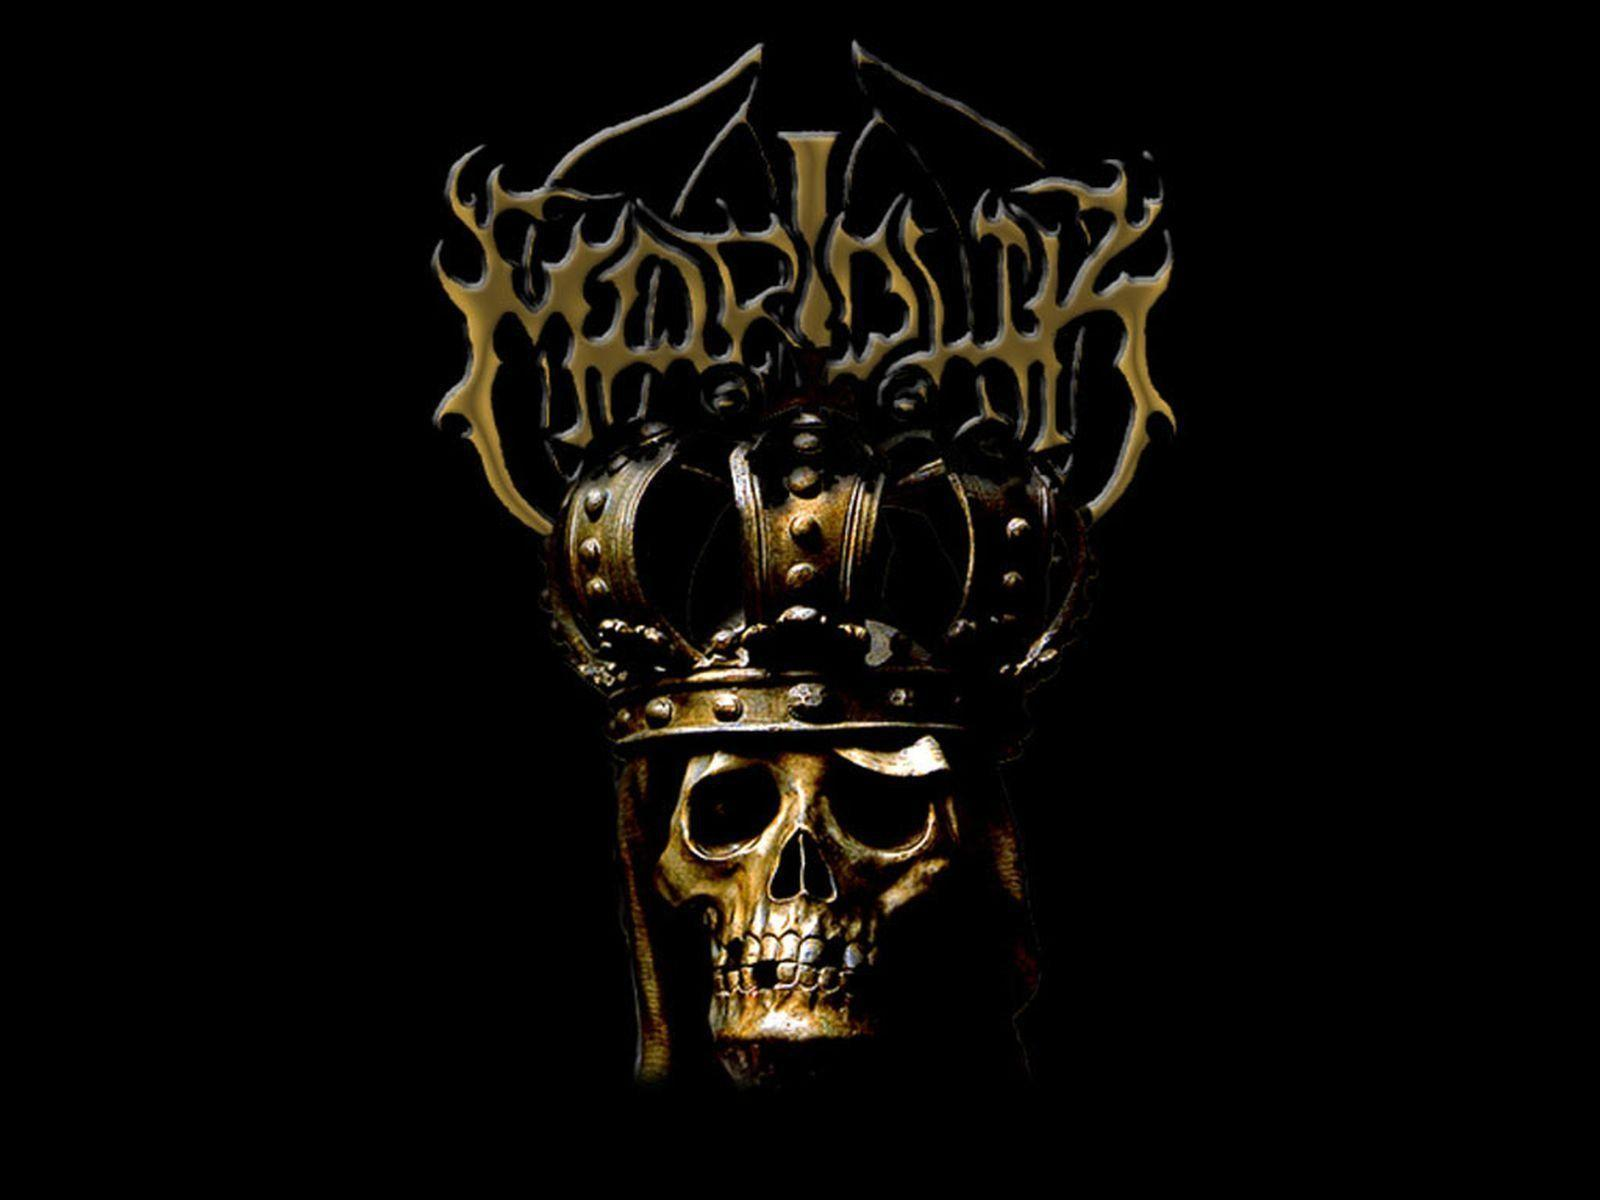 MARDUK black metal heavy hard rock dark skull skulls wallpapers